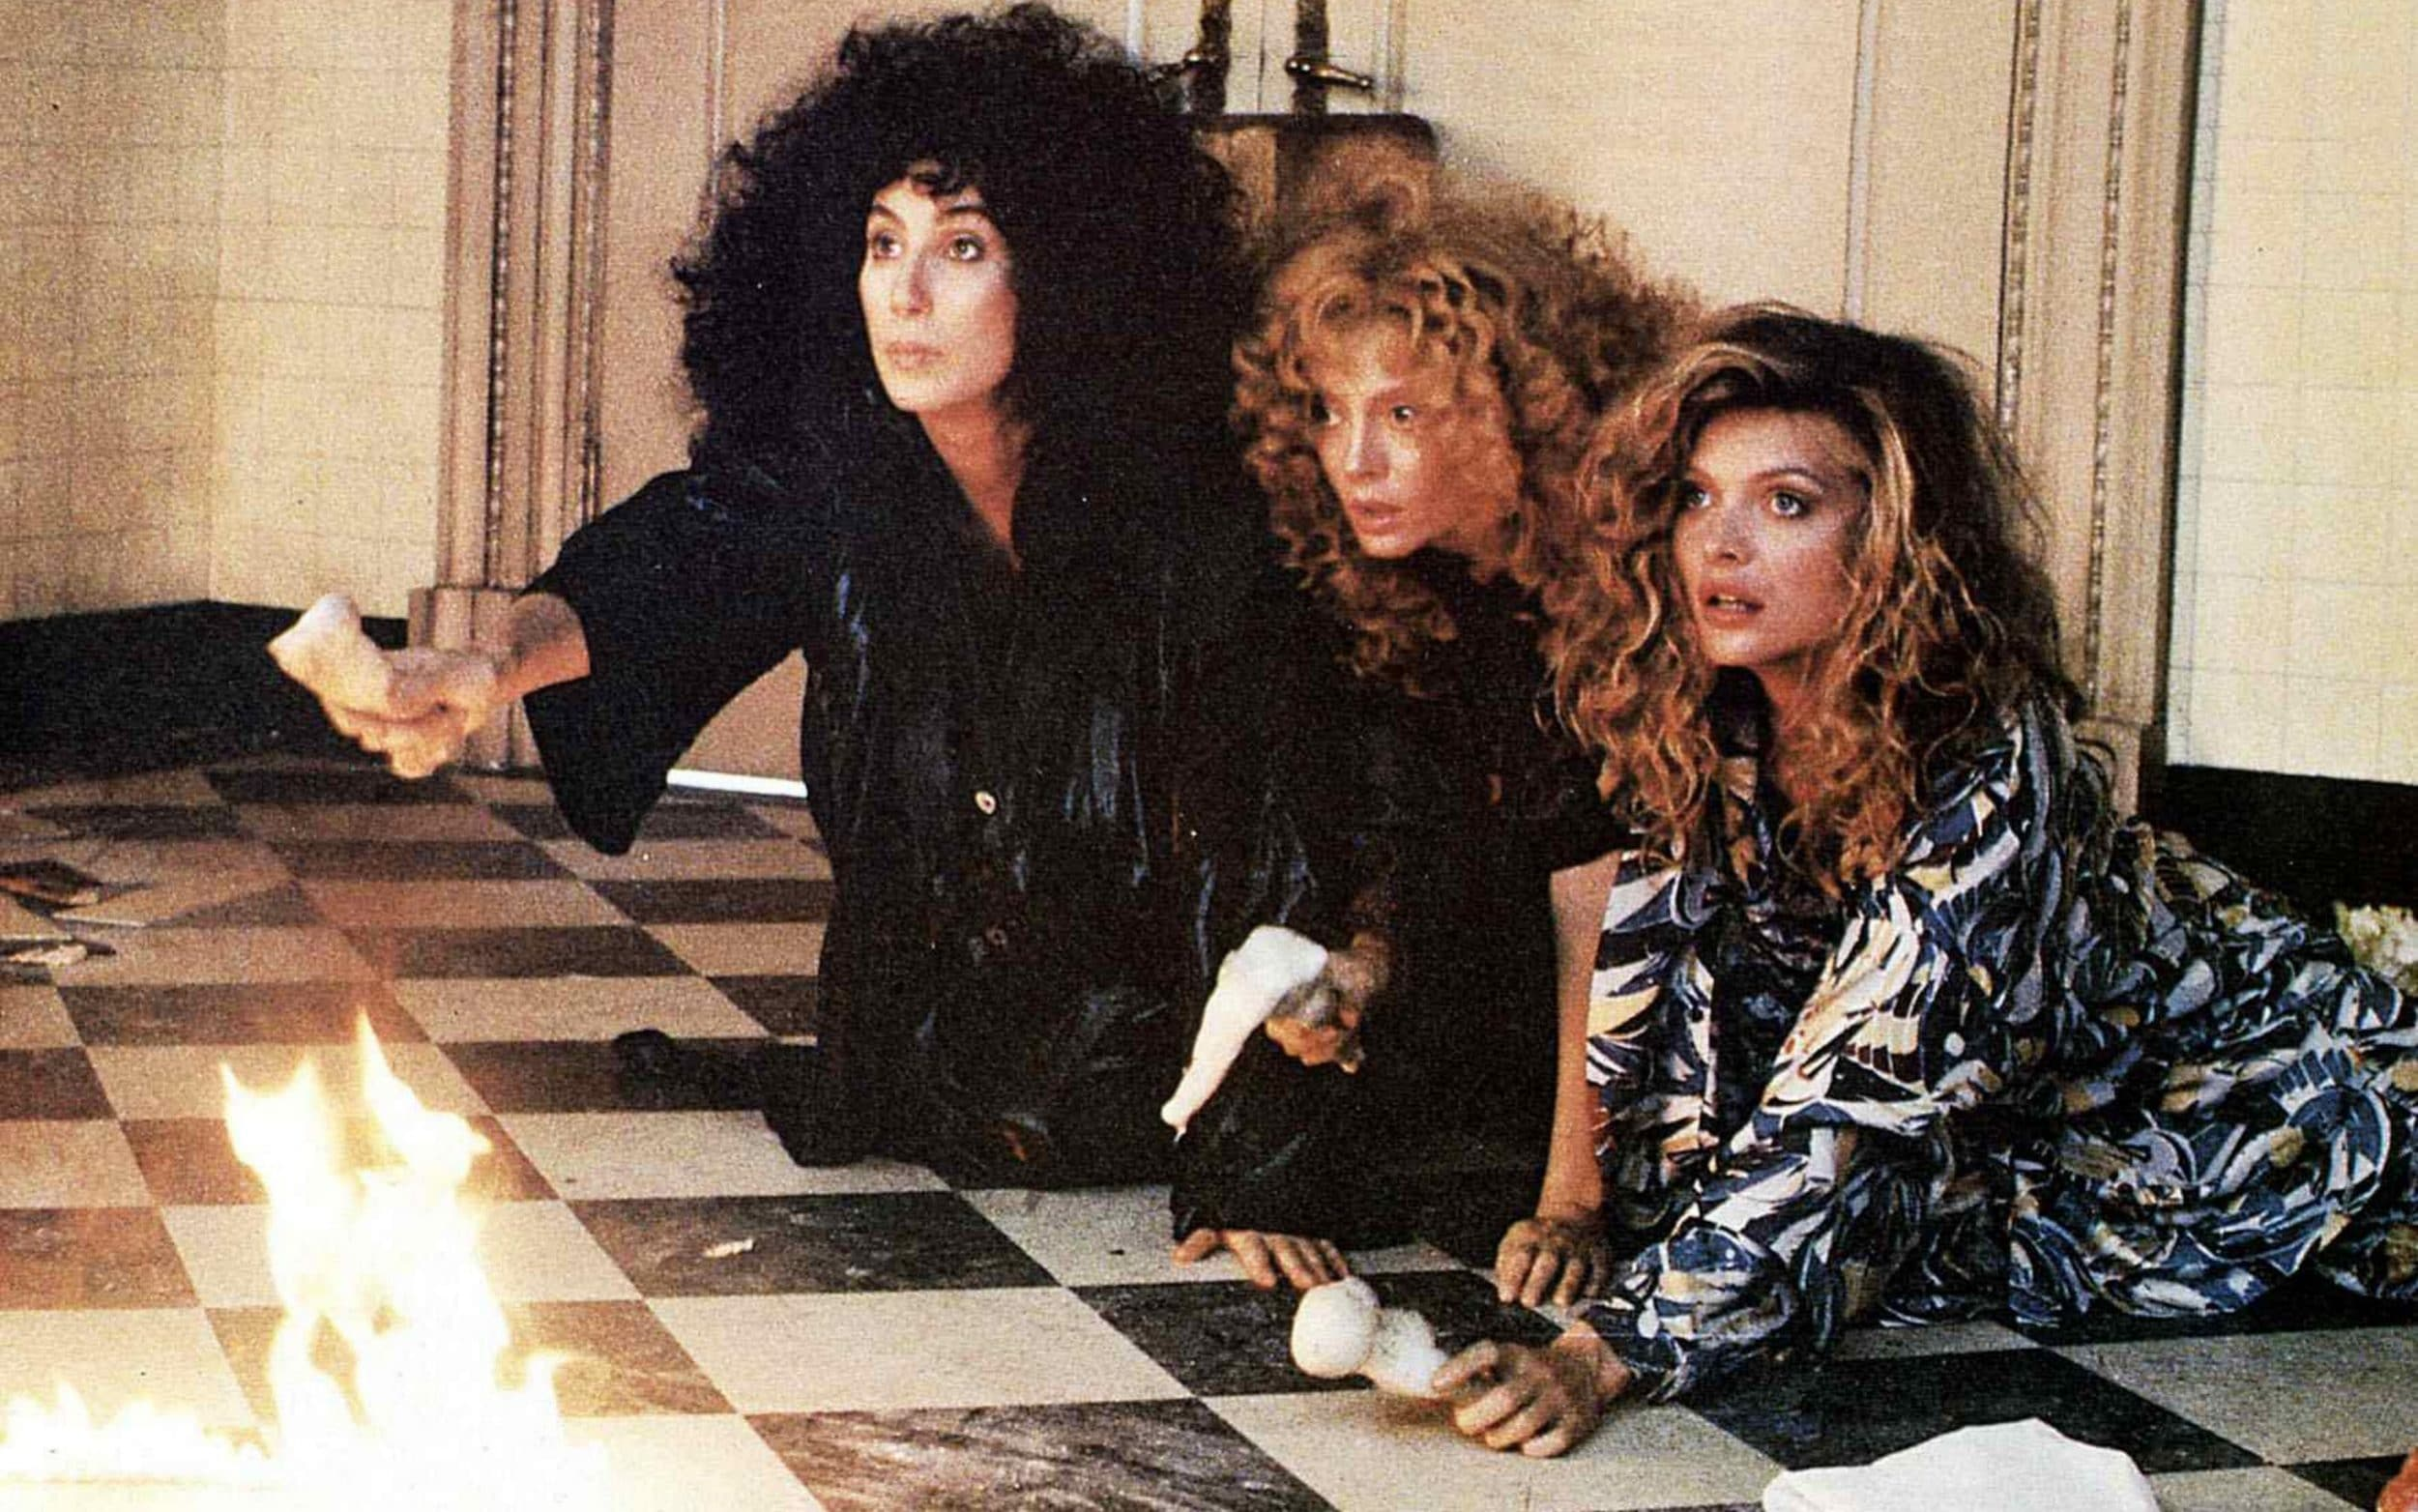 (l to r) Cher, Susan Sarandon and Michelle Pfeiffer in The Witches of Eastwick (1987)